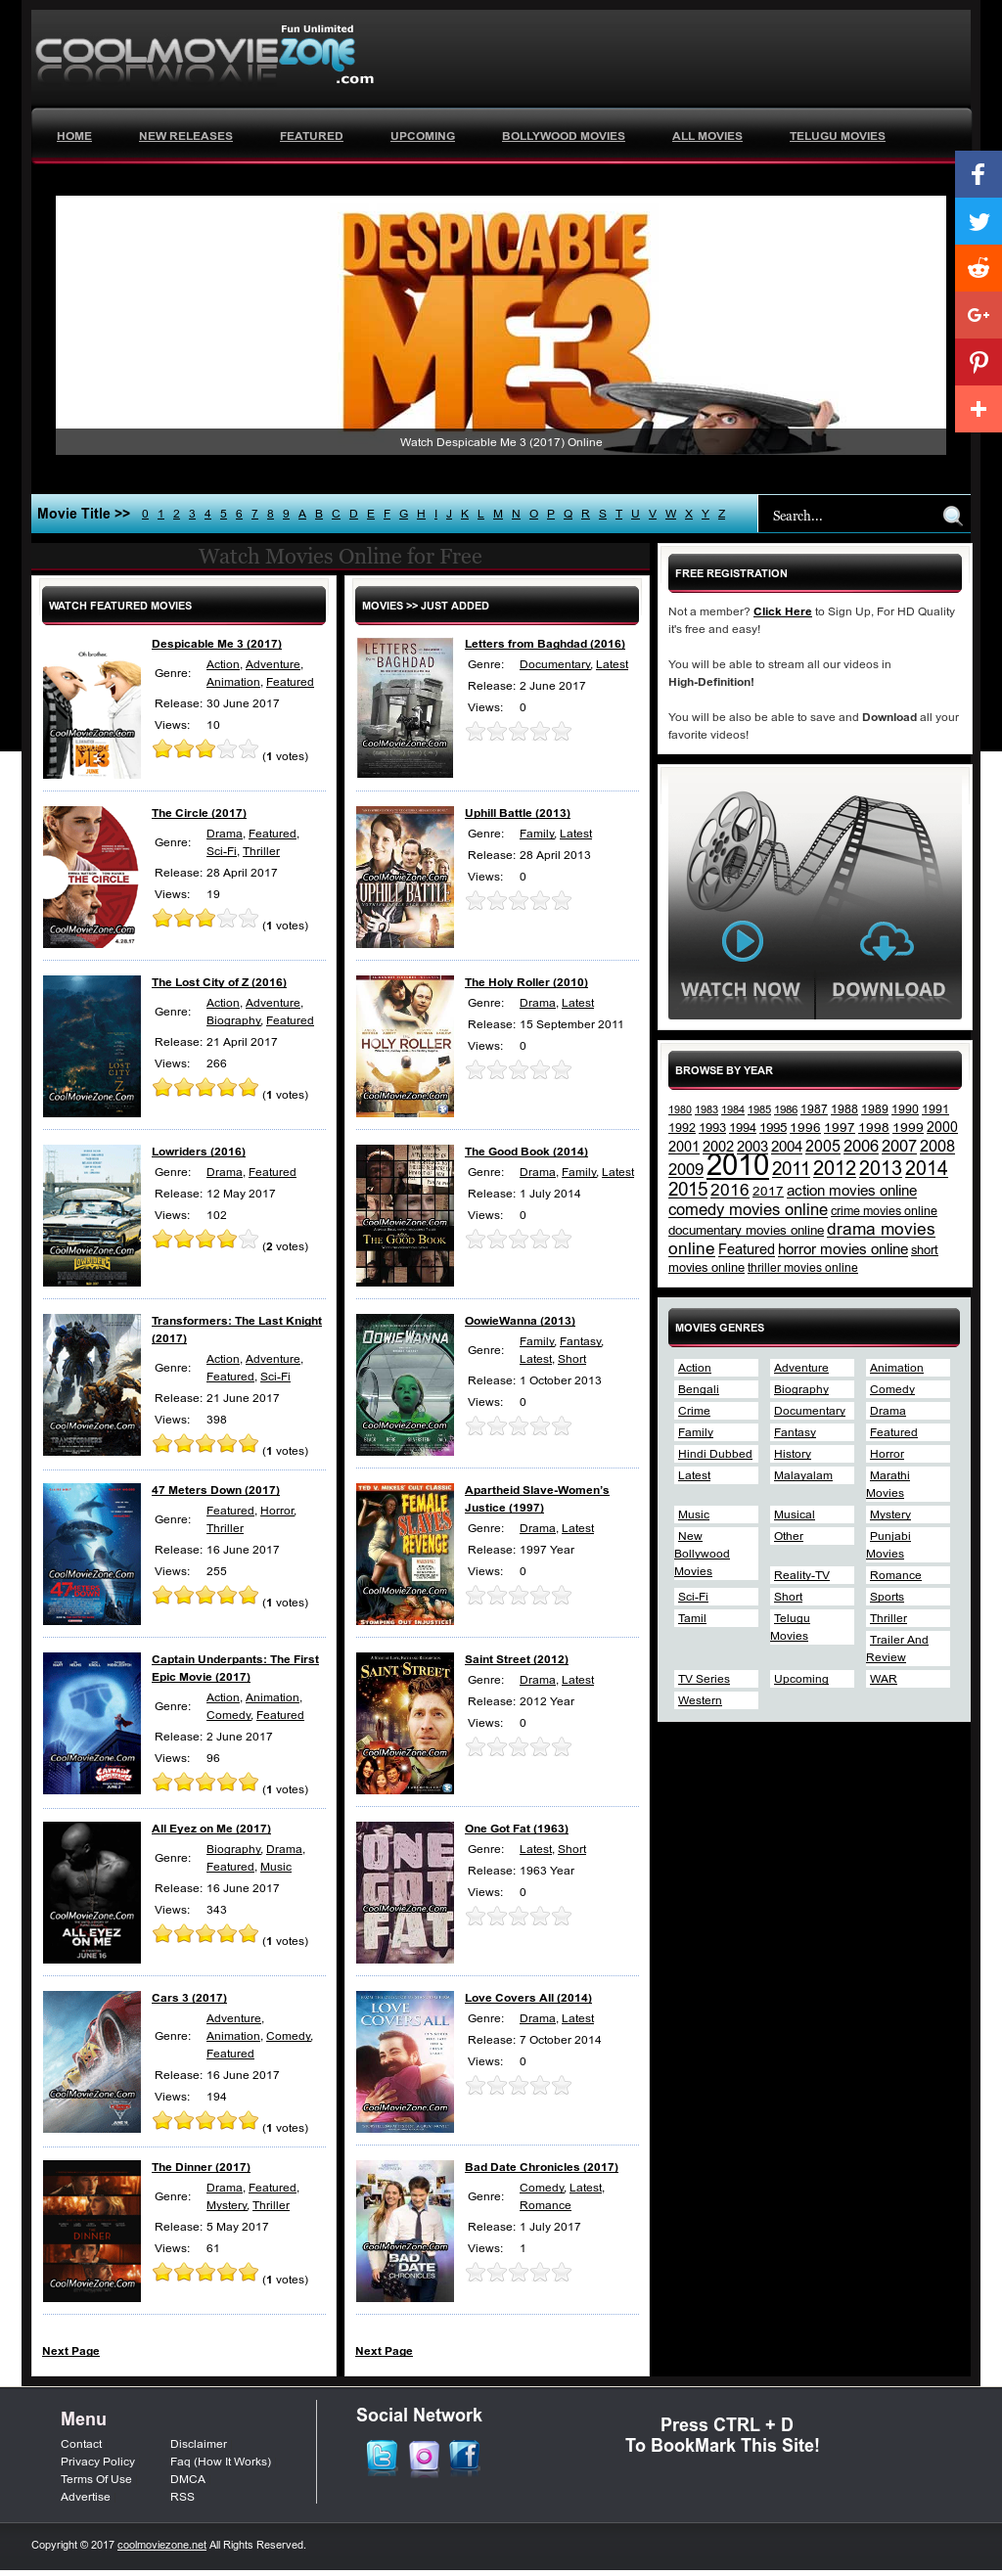 Coolmoviezone Competitors, Revenue and Employees - Owler Company Profile